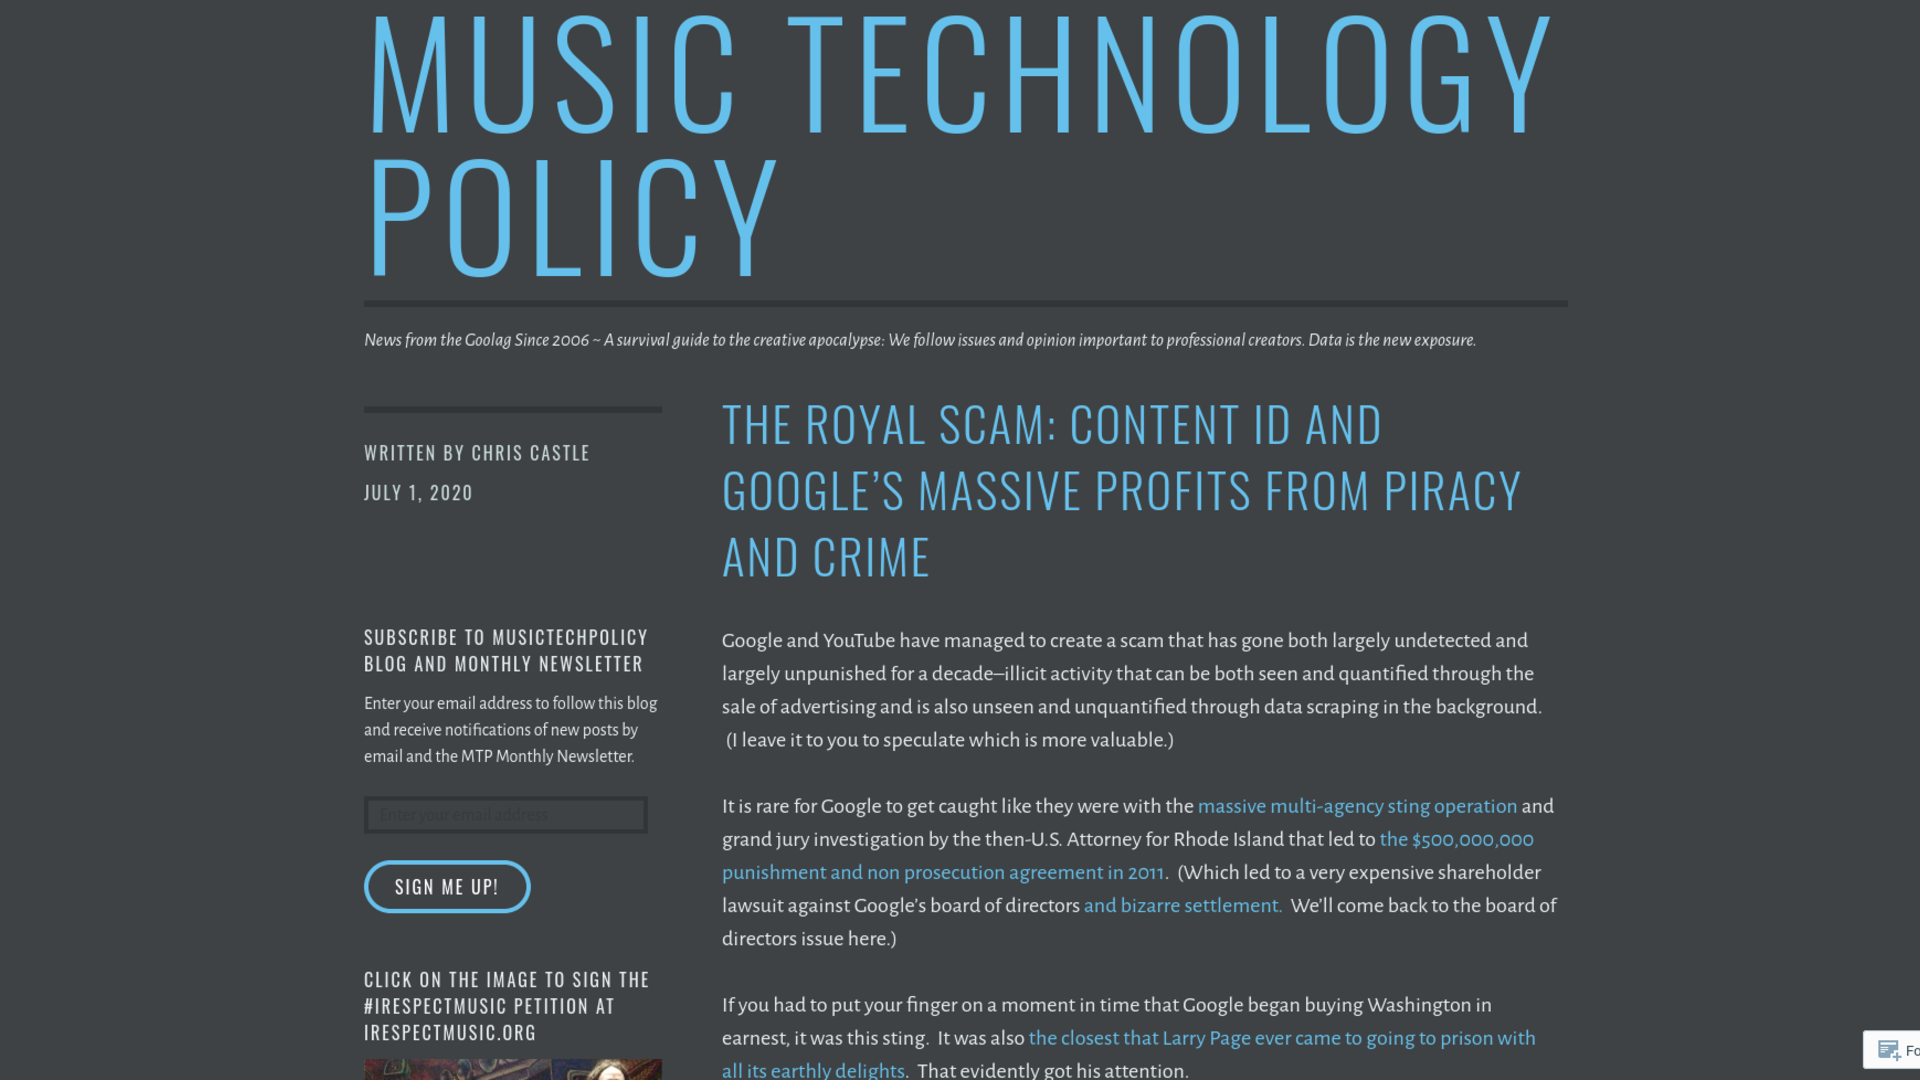 Fairness Rocks News The Royal Scam: Content ID and Google's Massive Profits From Piracy and Crime